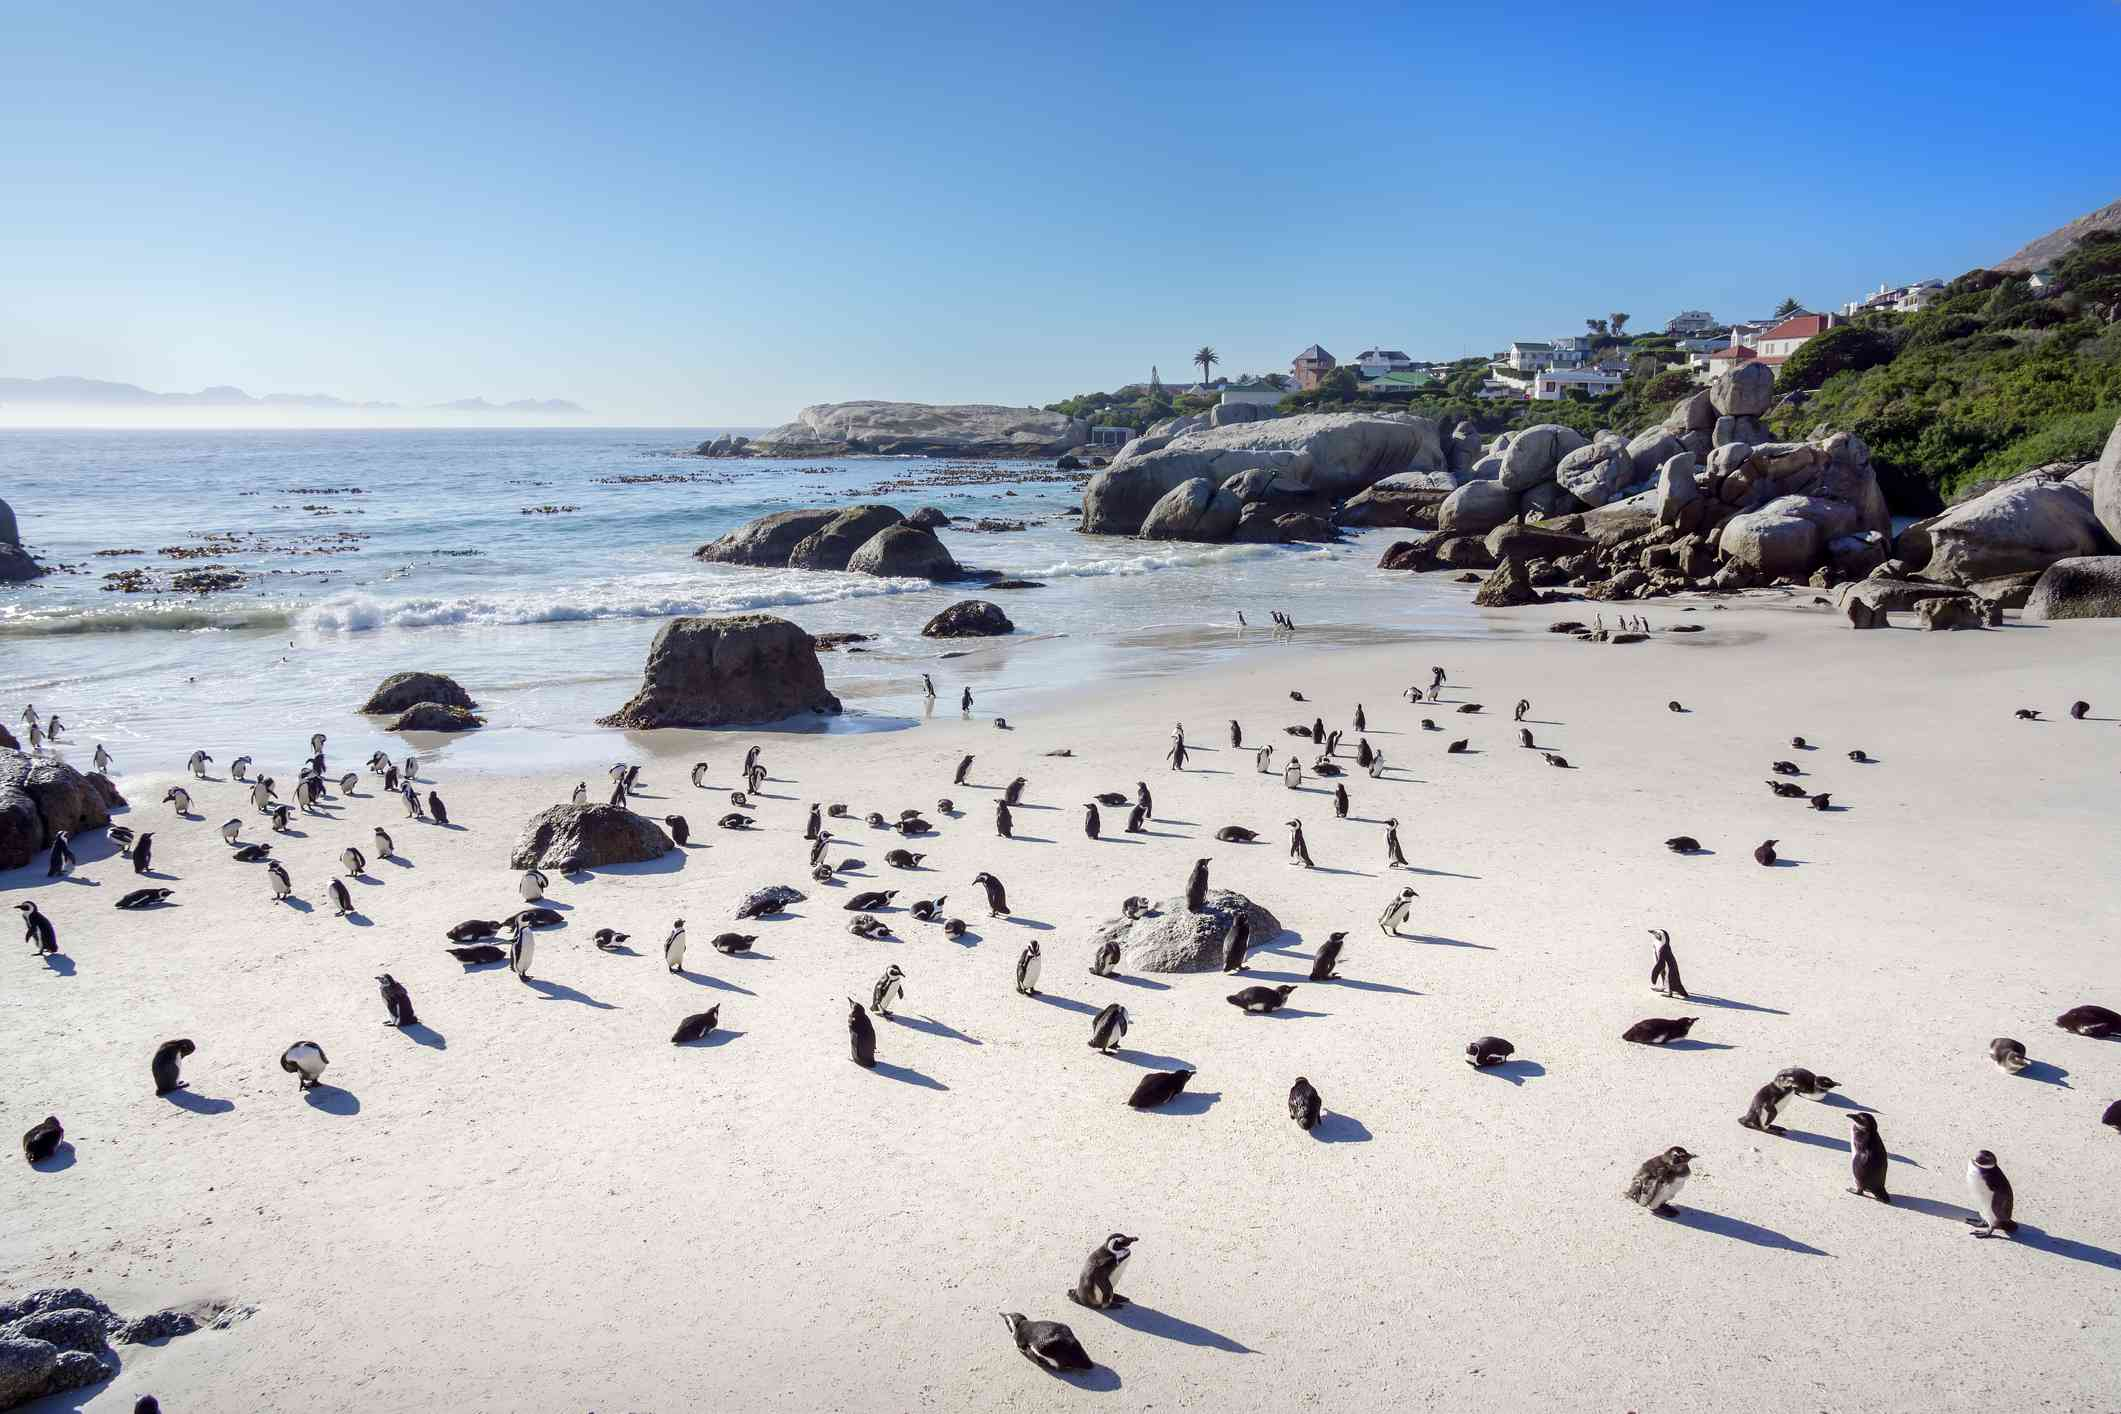 A colony of penguins on a white sandy beach with houses in the background